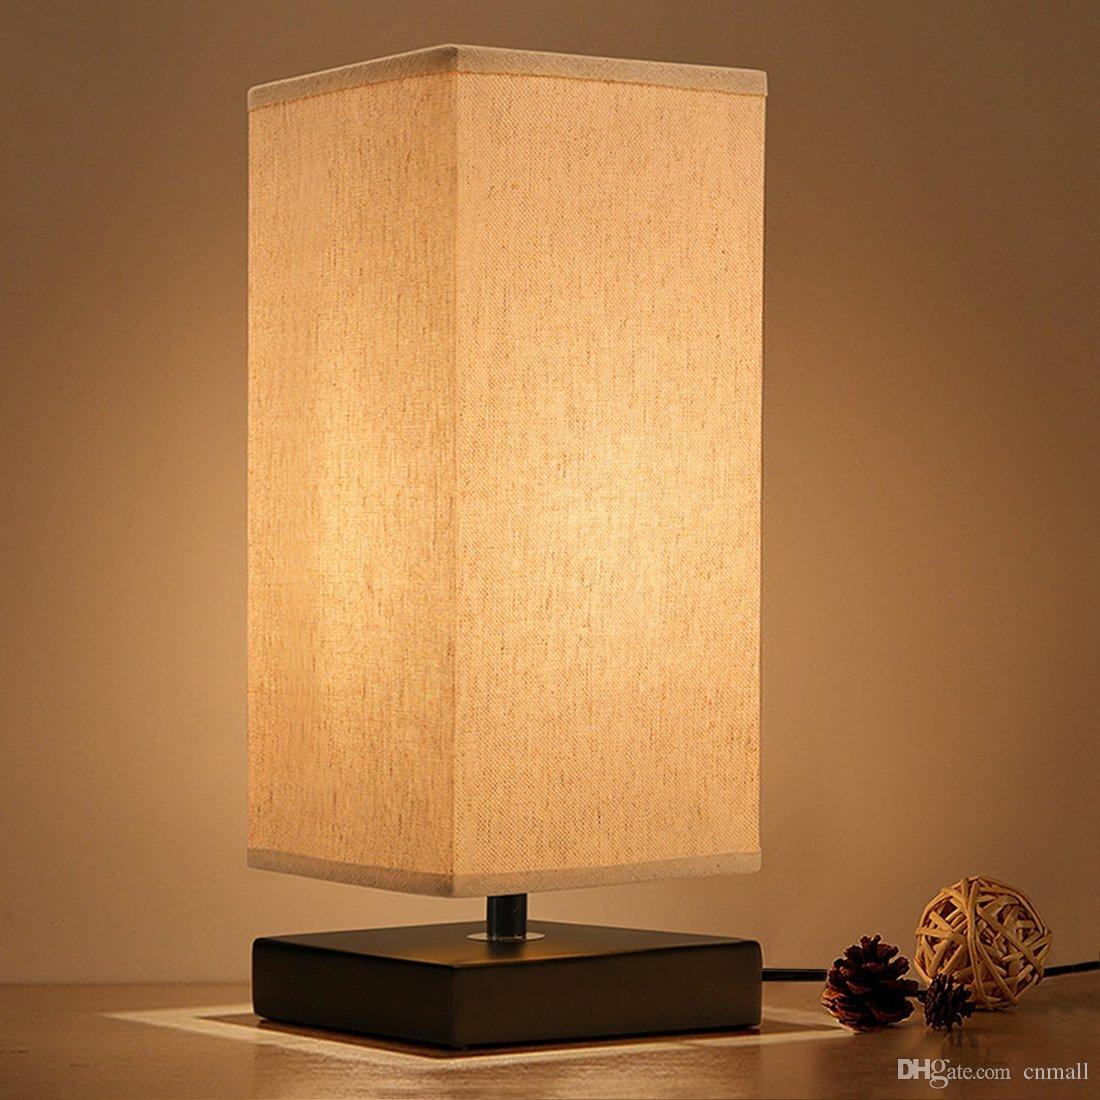 Ideas for bedside table lamps with night   light